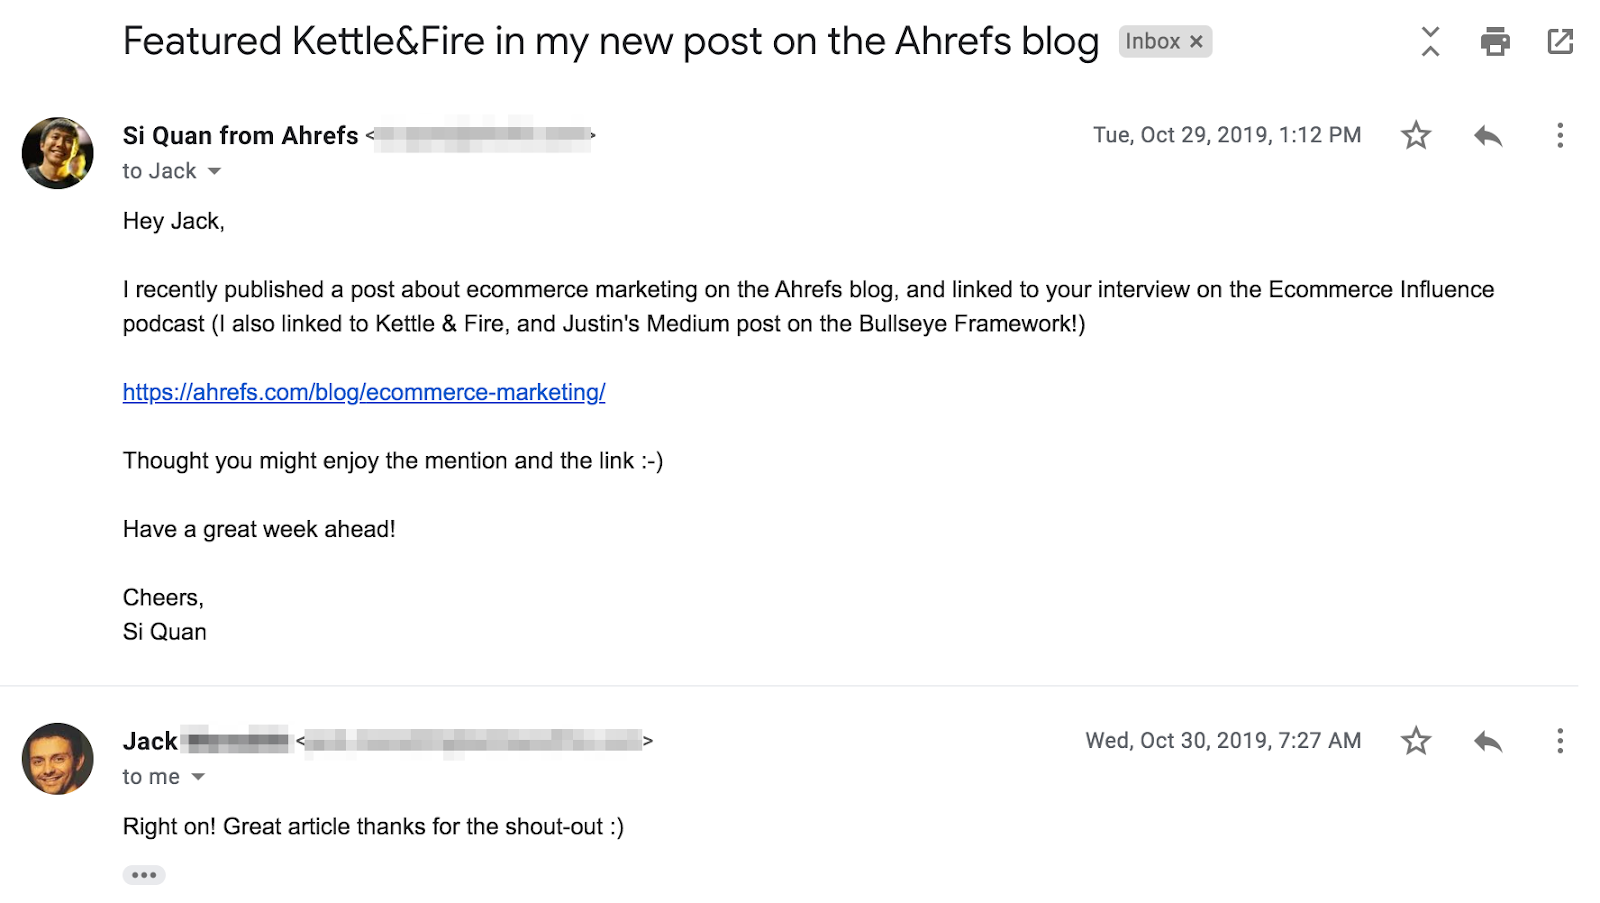 outreach email between Jack and Si Quan(Ahrefs)